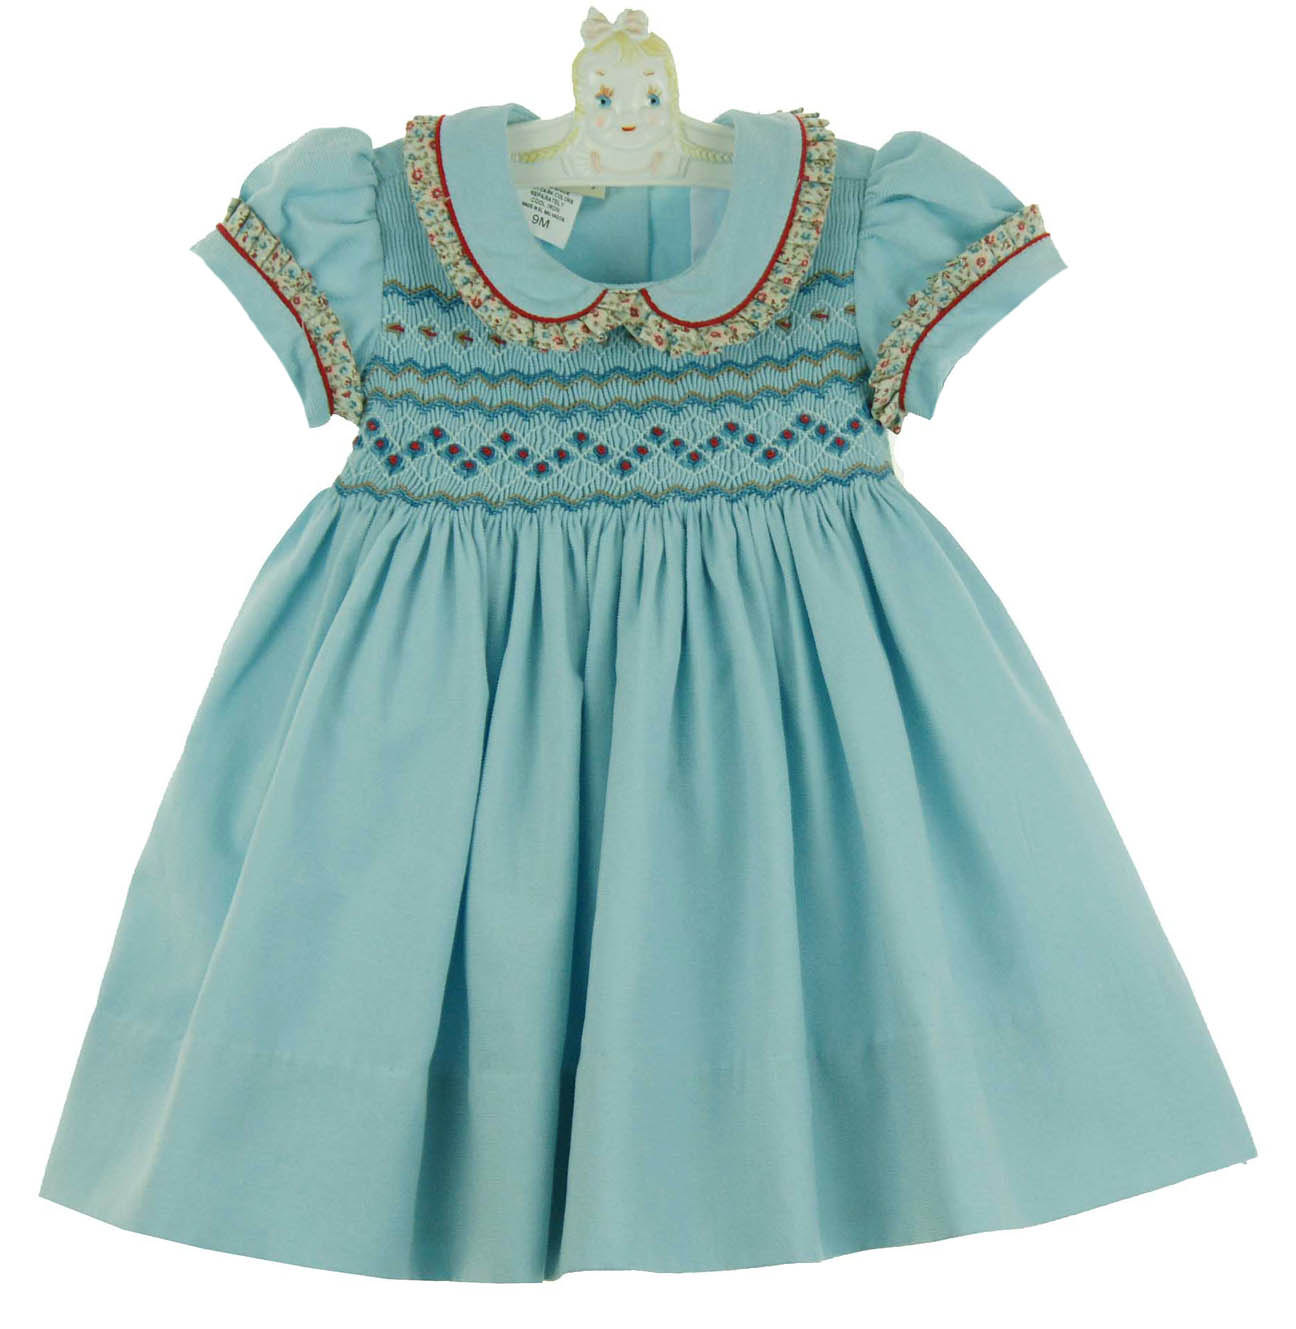 Marco & Lizzy aqua blue smocked dress with pleated floral trim,aqua ...